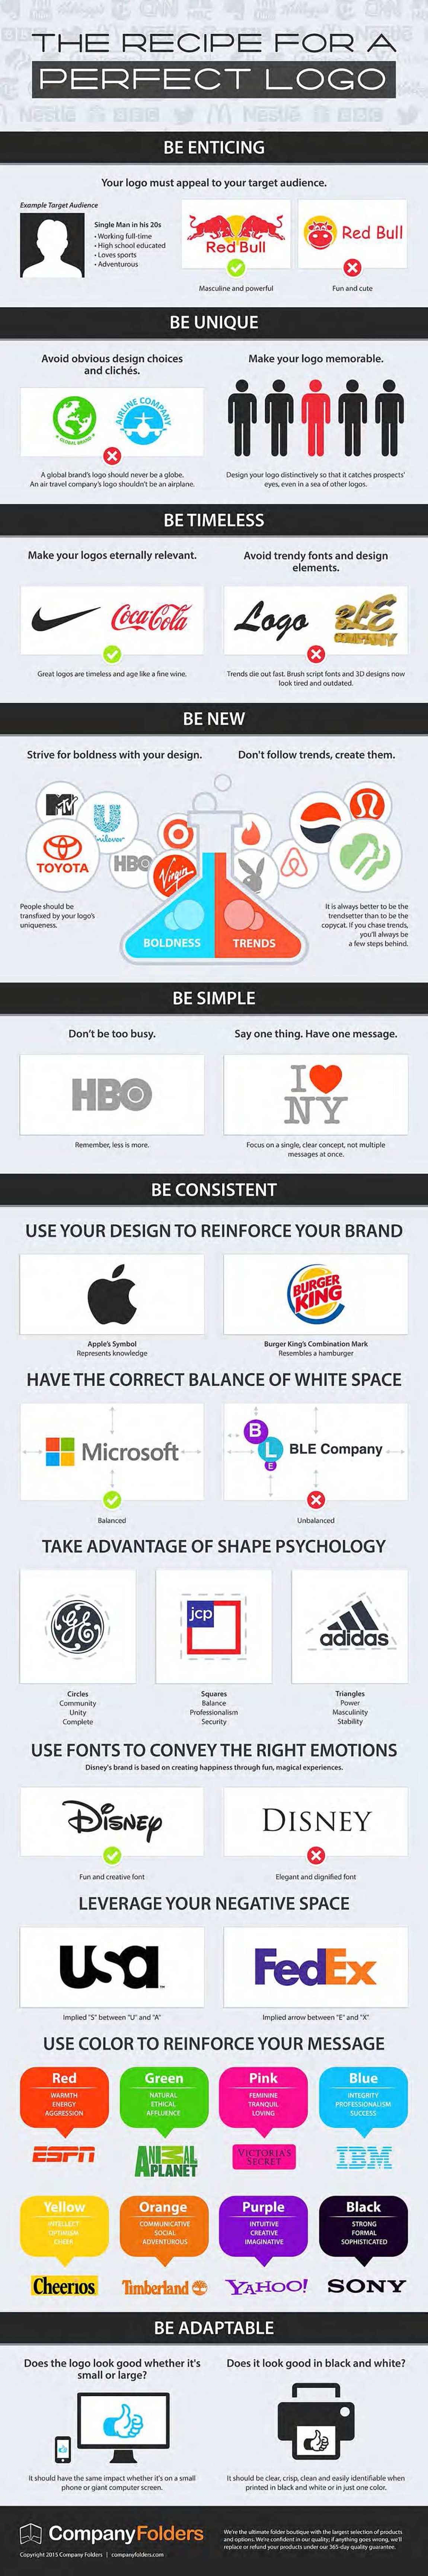 How to find the right business logo design infographic